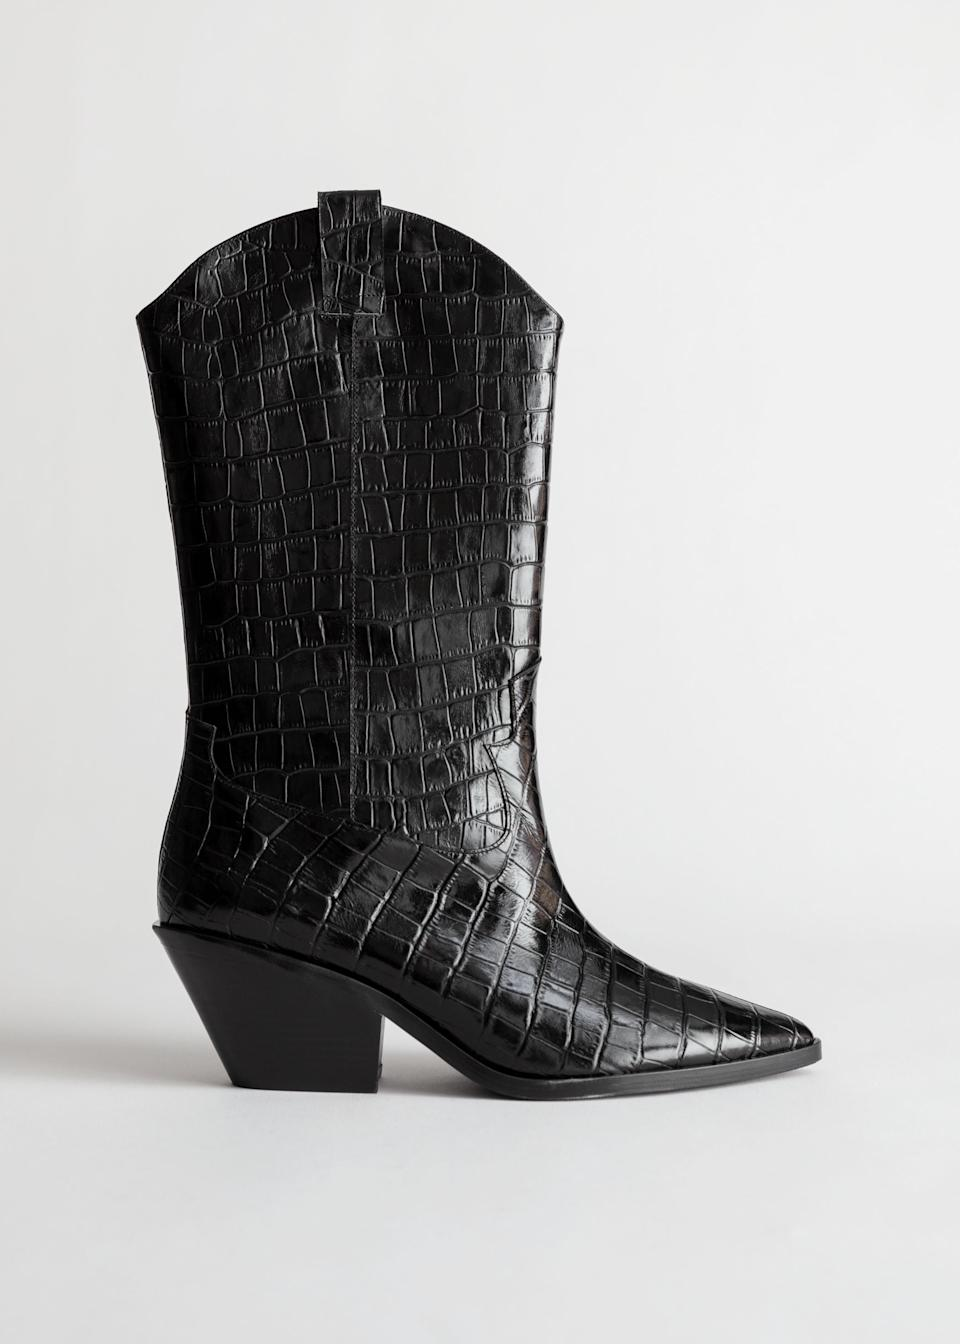 """<br><br><strong>& Other Stories</strong> Croc Embossed Leather Cowboy Boots, $, available at <a href=""""https://go.skimresources.com/?id=30283X879131&url=https%3A%2F%2Fwww.stories.com%2Fen_usd%2Fshoes%2Fboots%2Fproduct.croc-embossed-leather-cowboy-boots-black.0794834002.html"""" rel=""""nofollow noopener"""" target=""""_blank"""" data-ylk=""""slk:& Other Stories"""" class=""""link rapid-noclick-resp"""">& Other Stories</a>"""